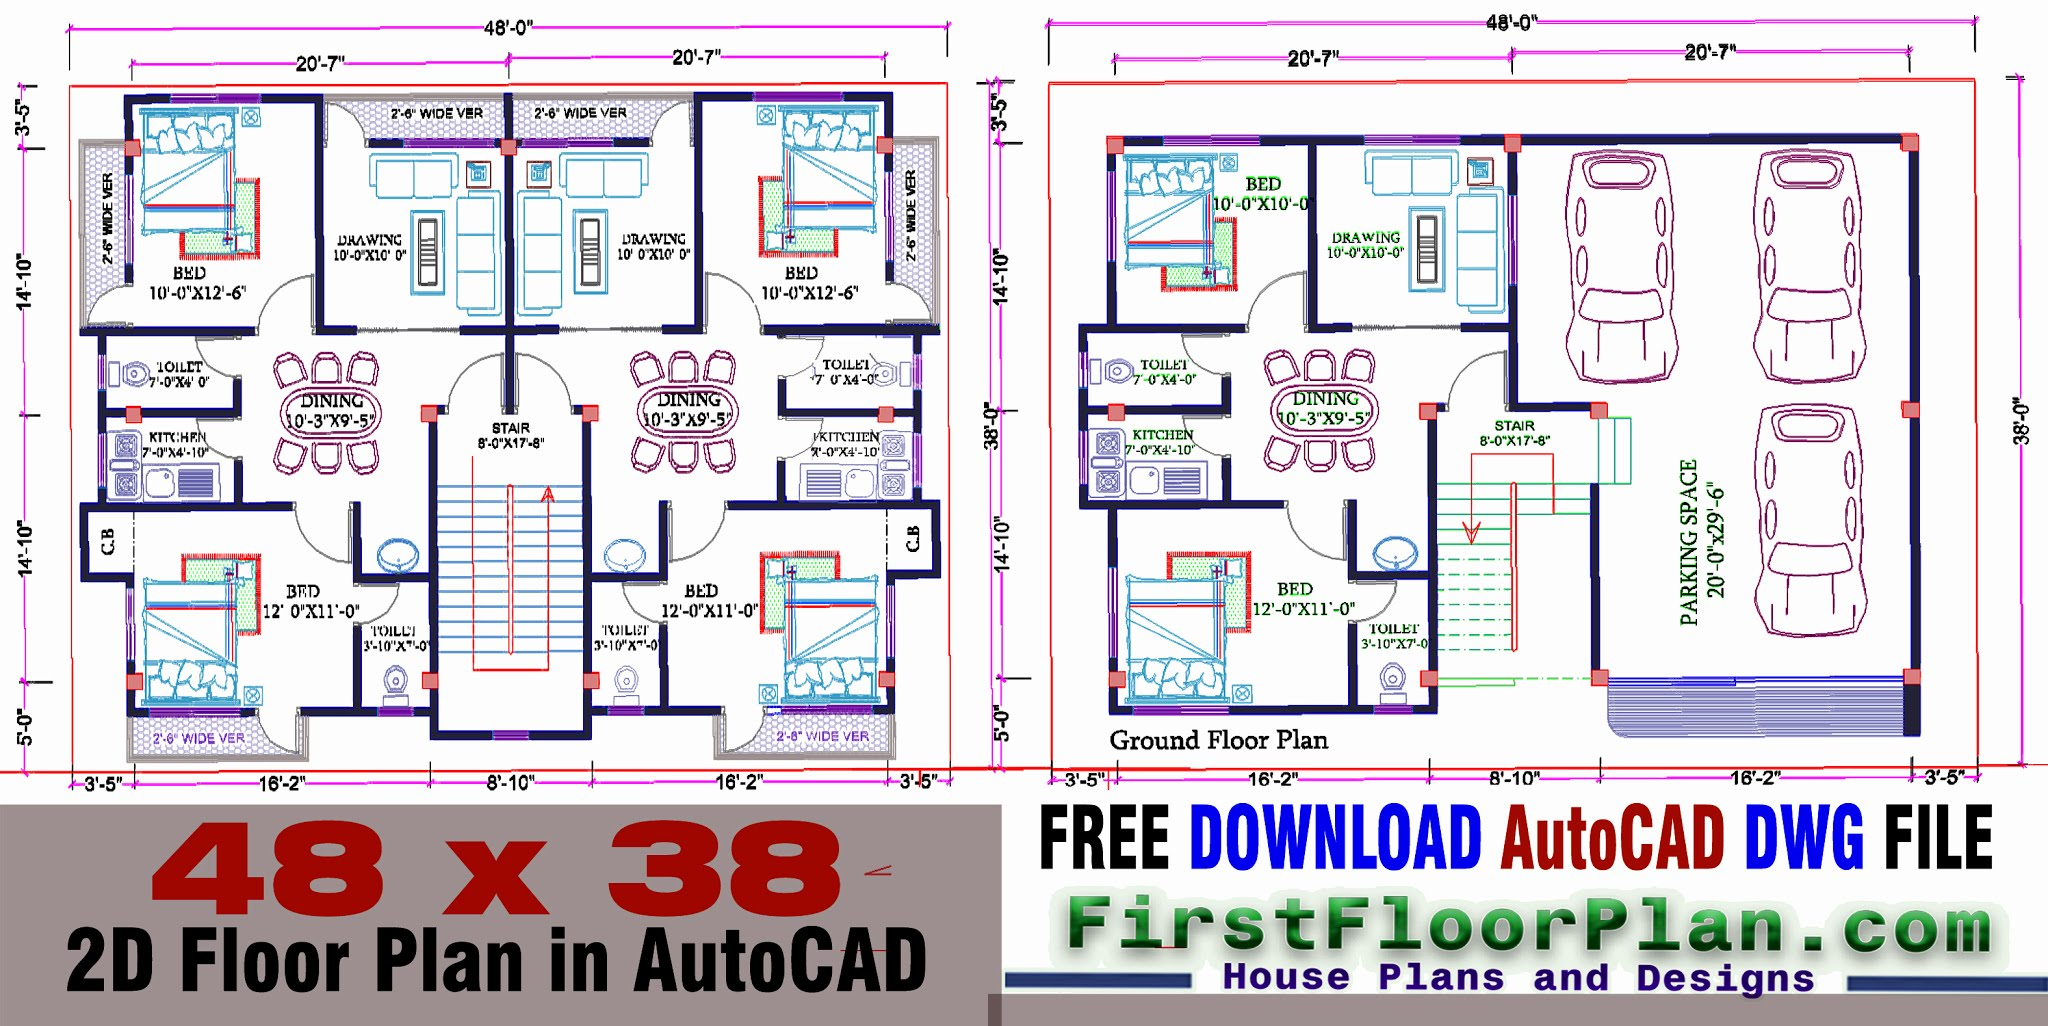 2D Floor Plan in AutoCAD with Dimensions | 38 x 48 | DWG and PDF File Free Download